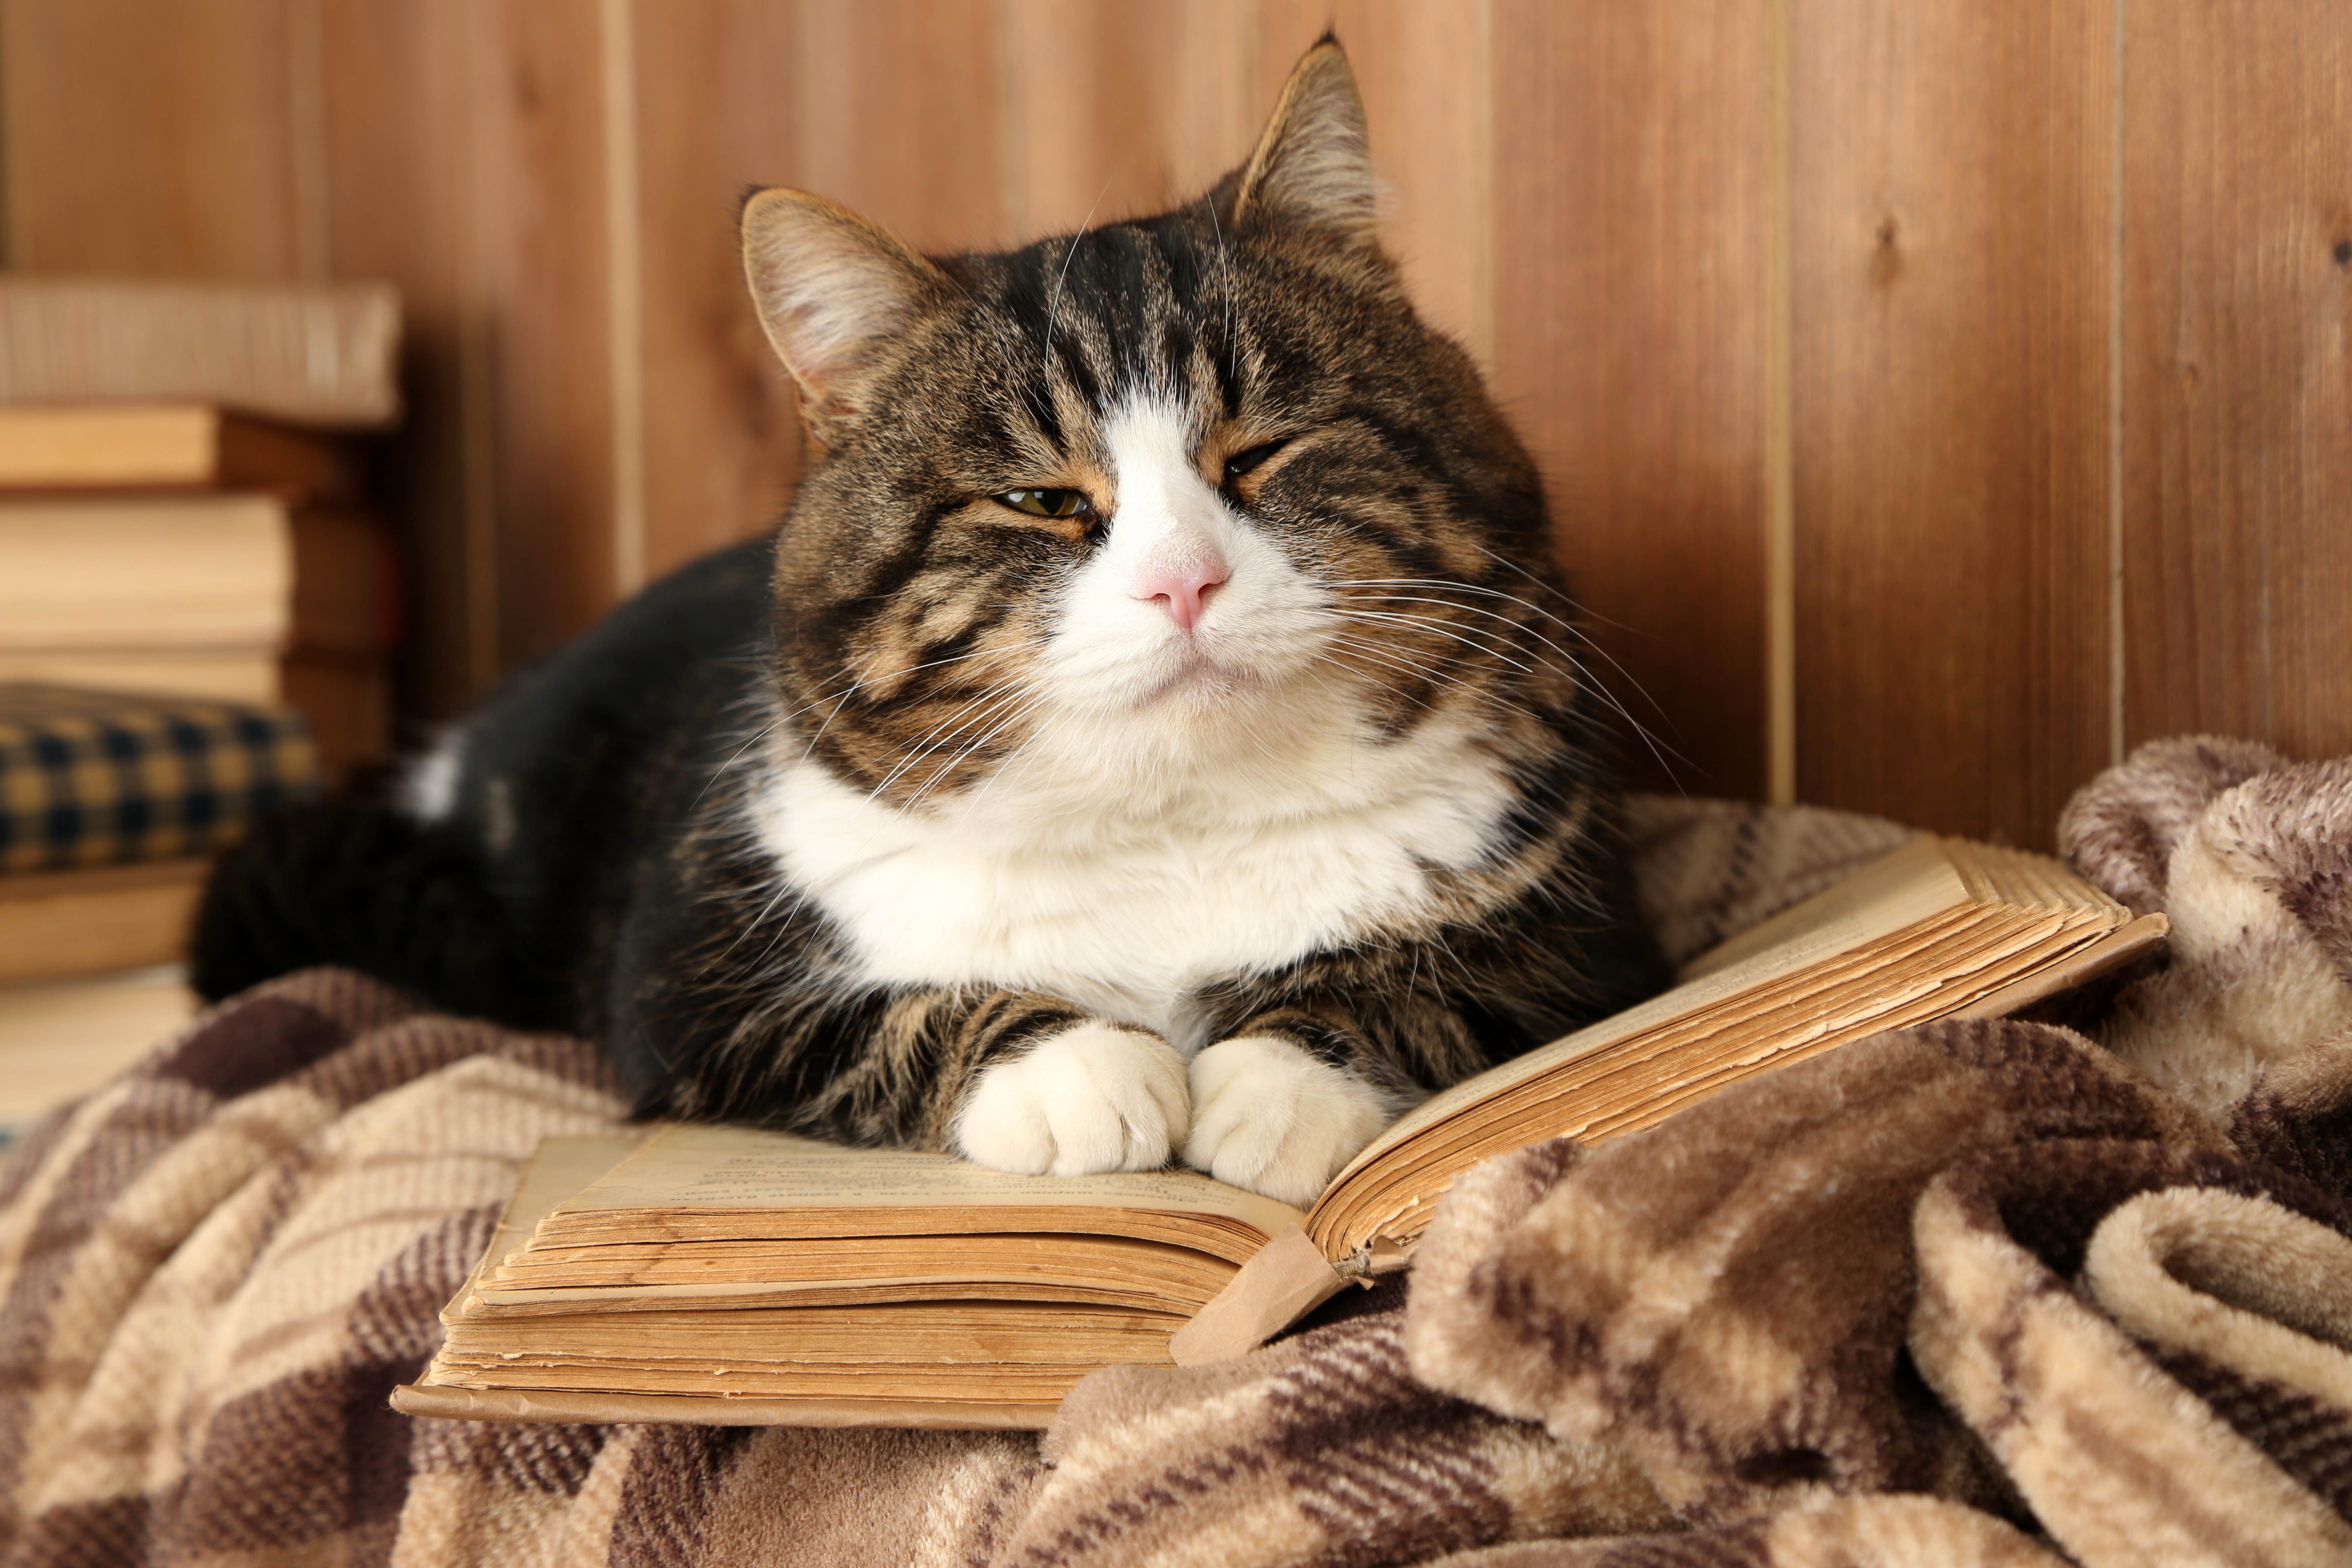 Do You Know Any Good Cat Books?